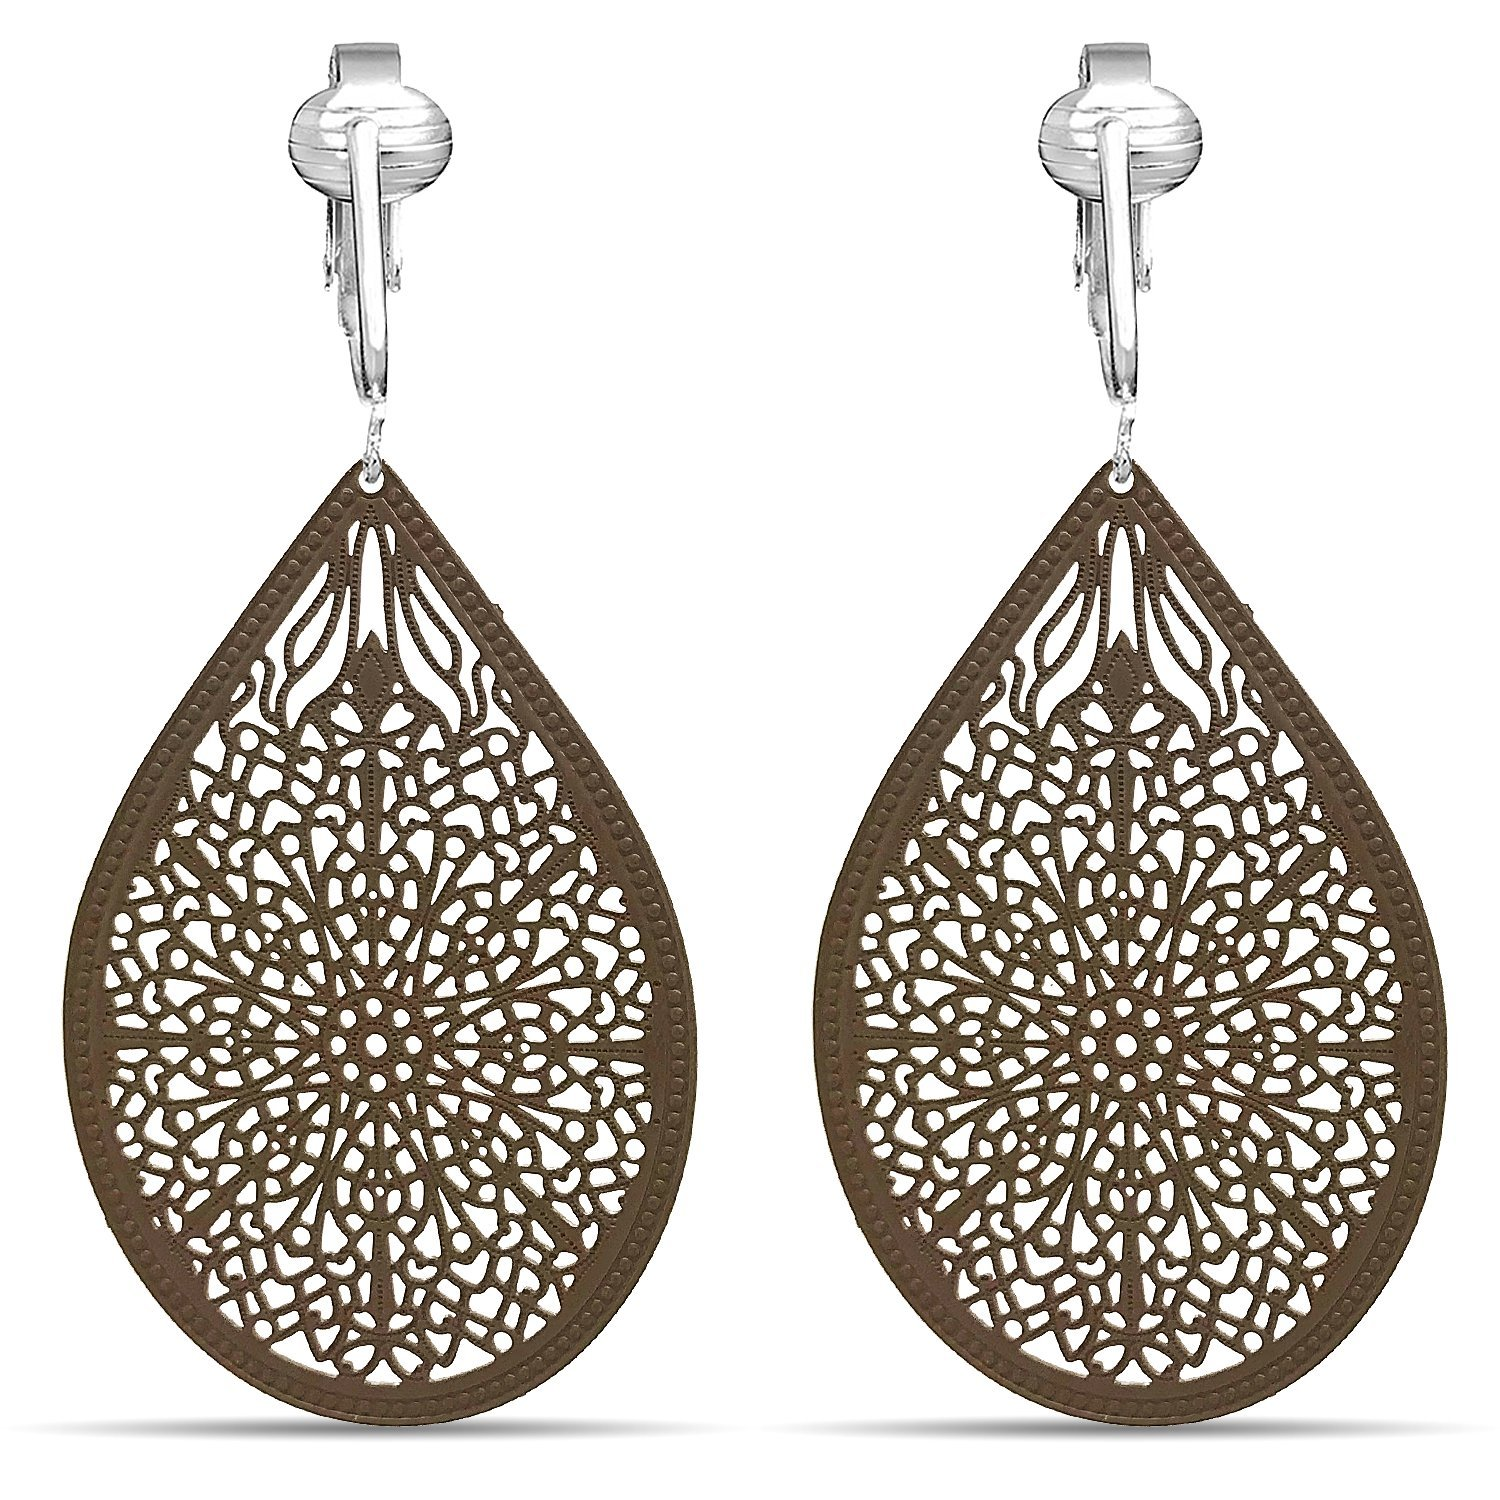 Lovely Victorian Filigree Clip On Earrings for Women & Girls Clip-ons, Lightweight Teardrop Leaf Dangle Clip Earring Shop 0H5044